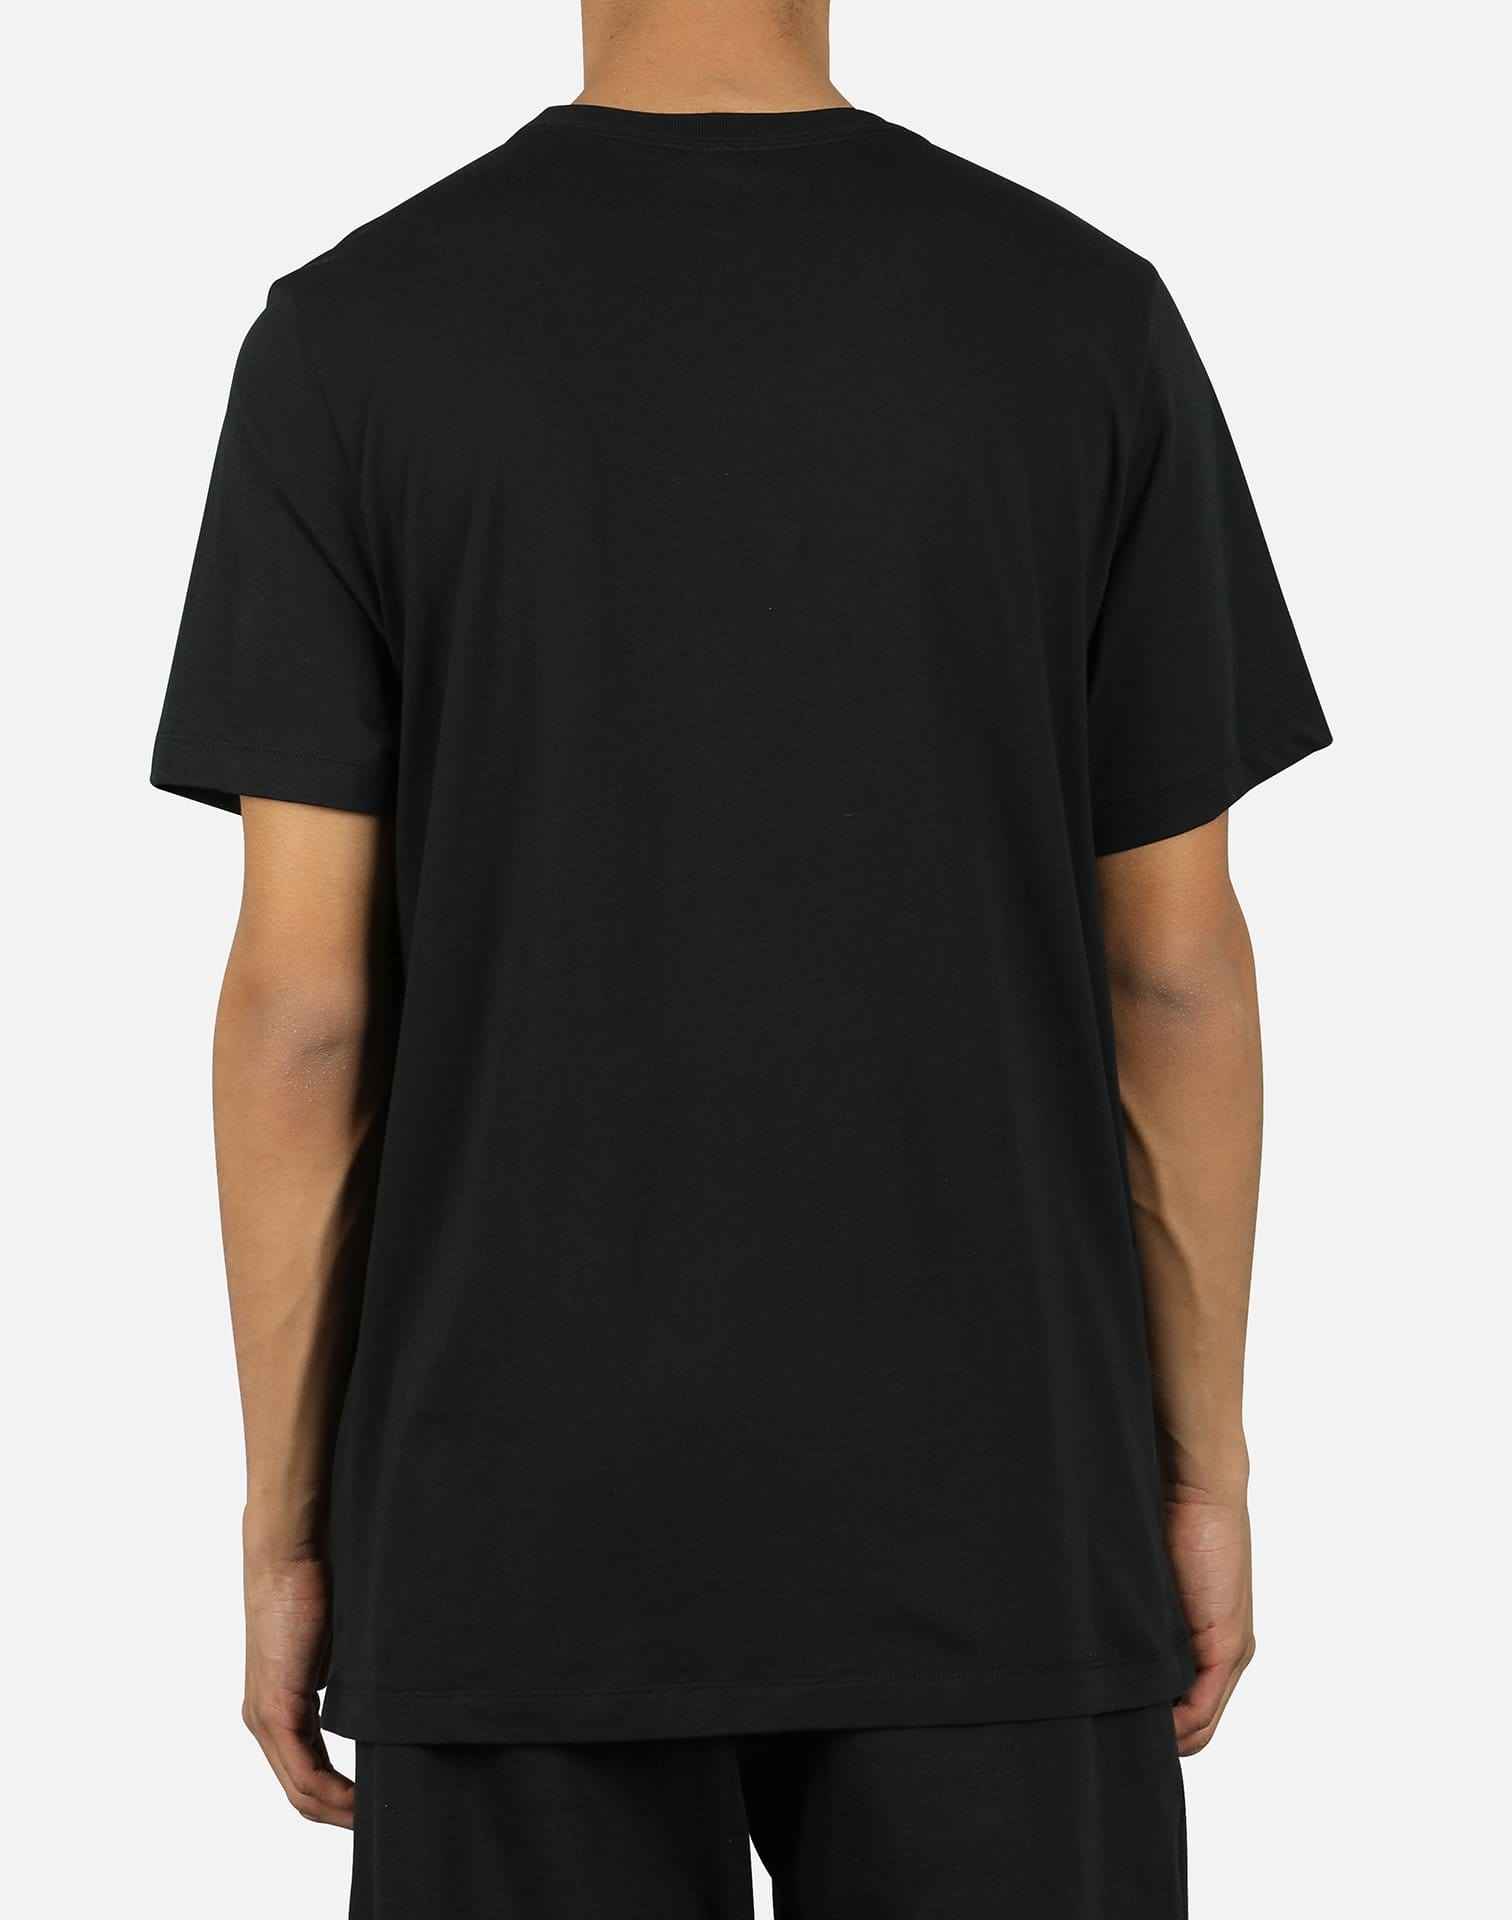 Jordan Men's Futura Wings Tee